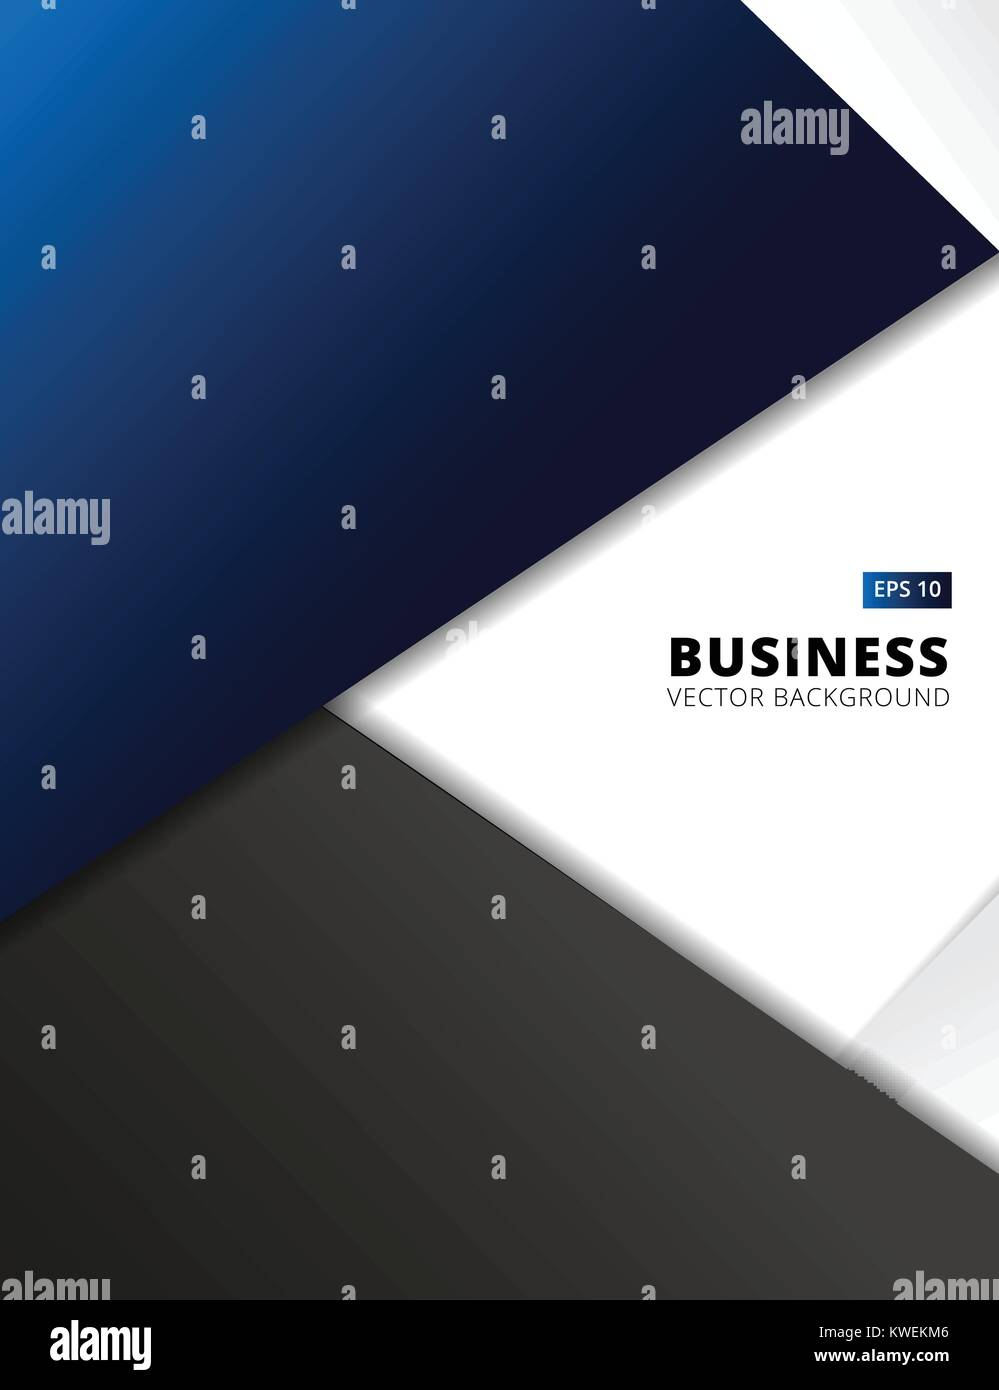 professional business flyer template or corporate banner design in